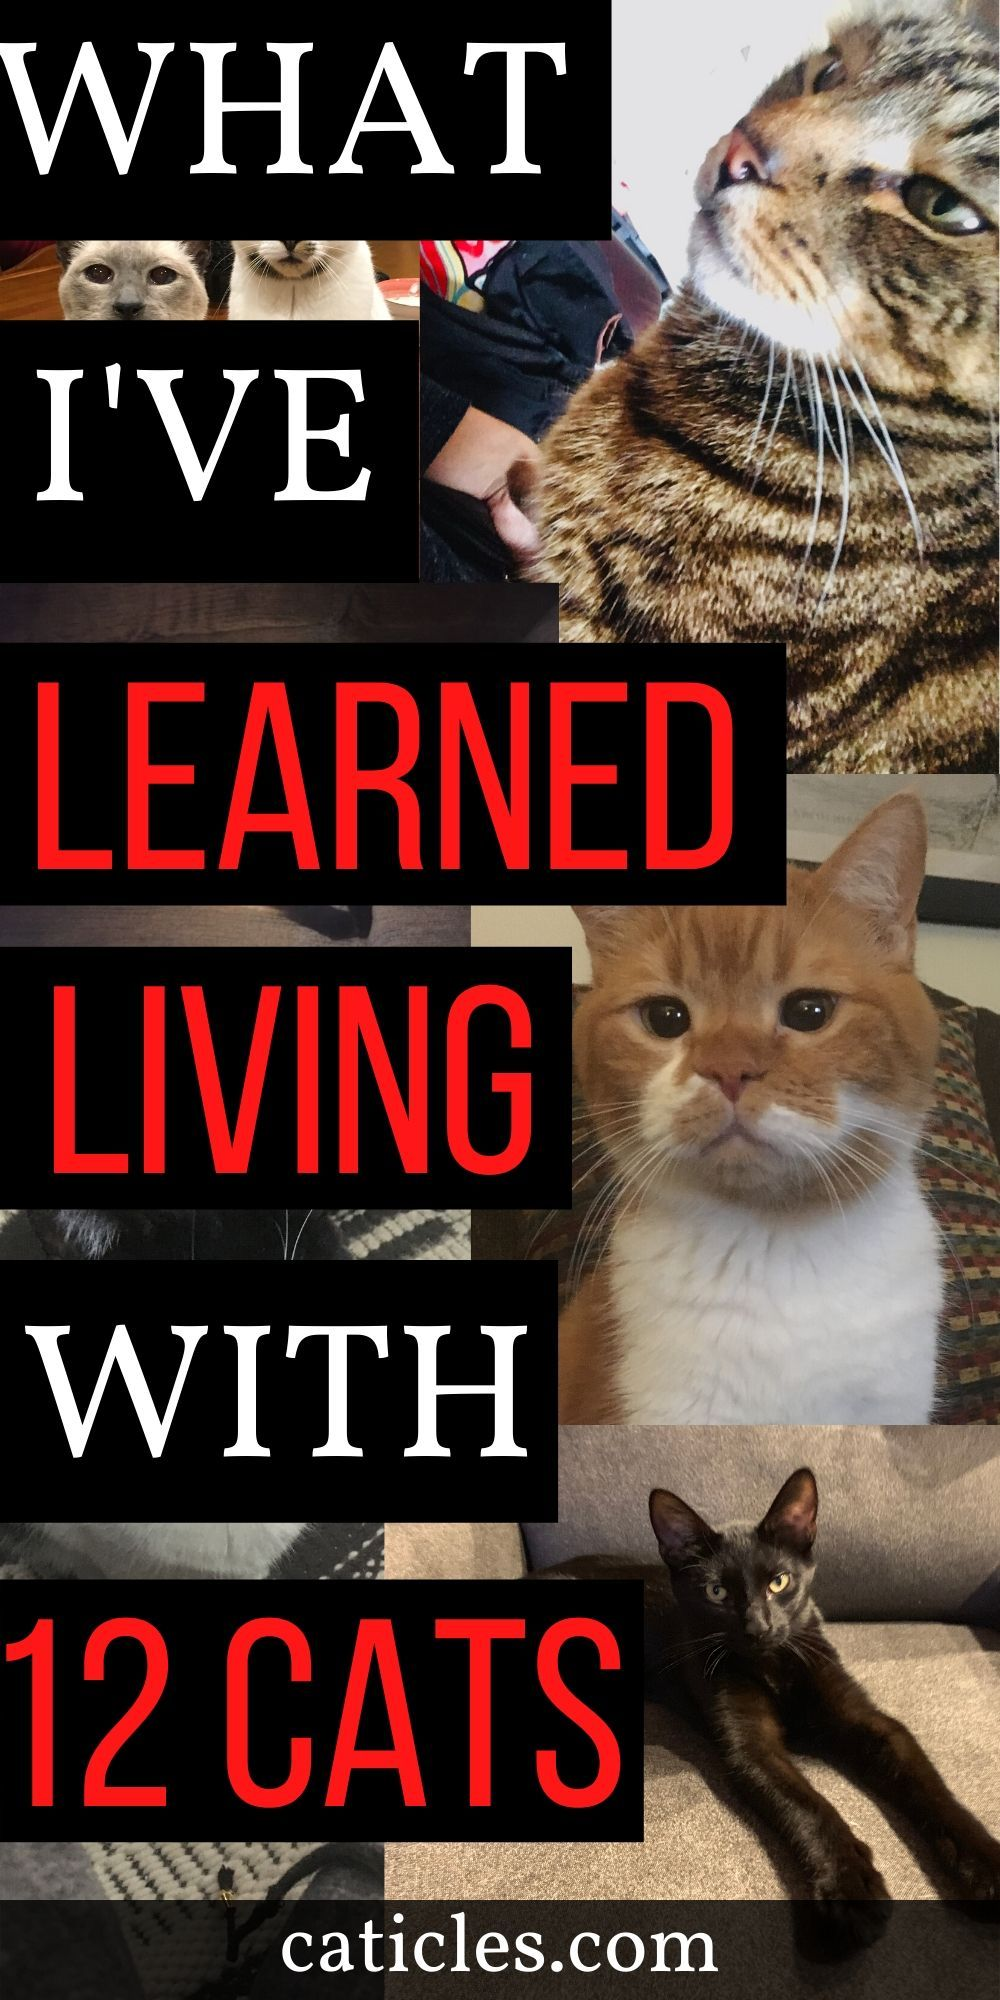 12 Loving Cats Taught Me These Important Things In Life Caticles Cat Problems Kitten Care Cat Care